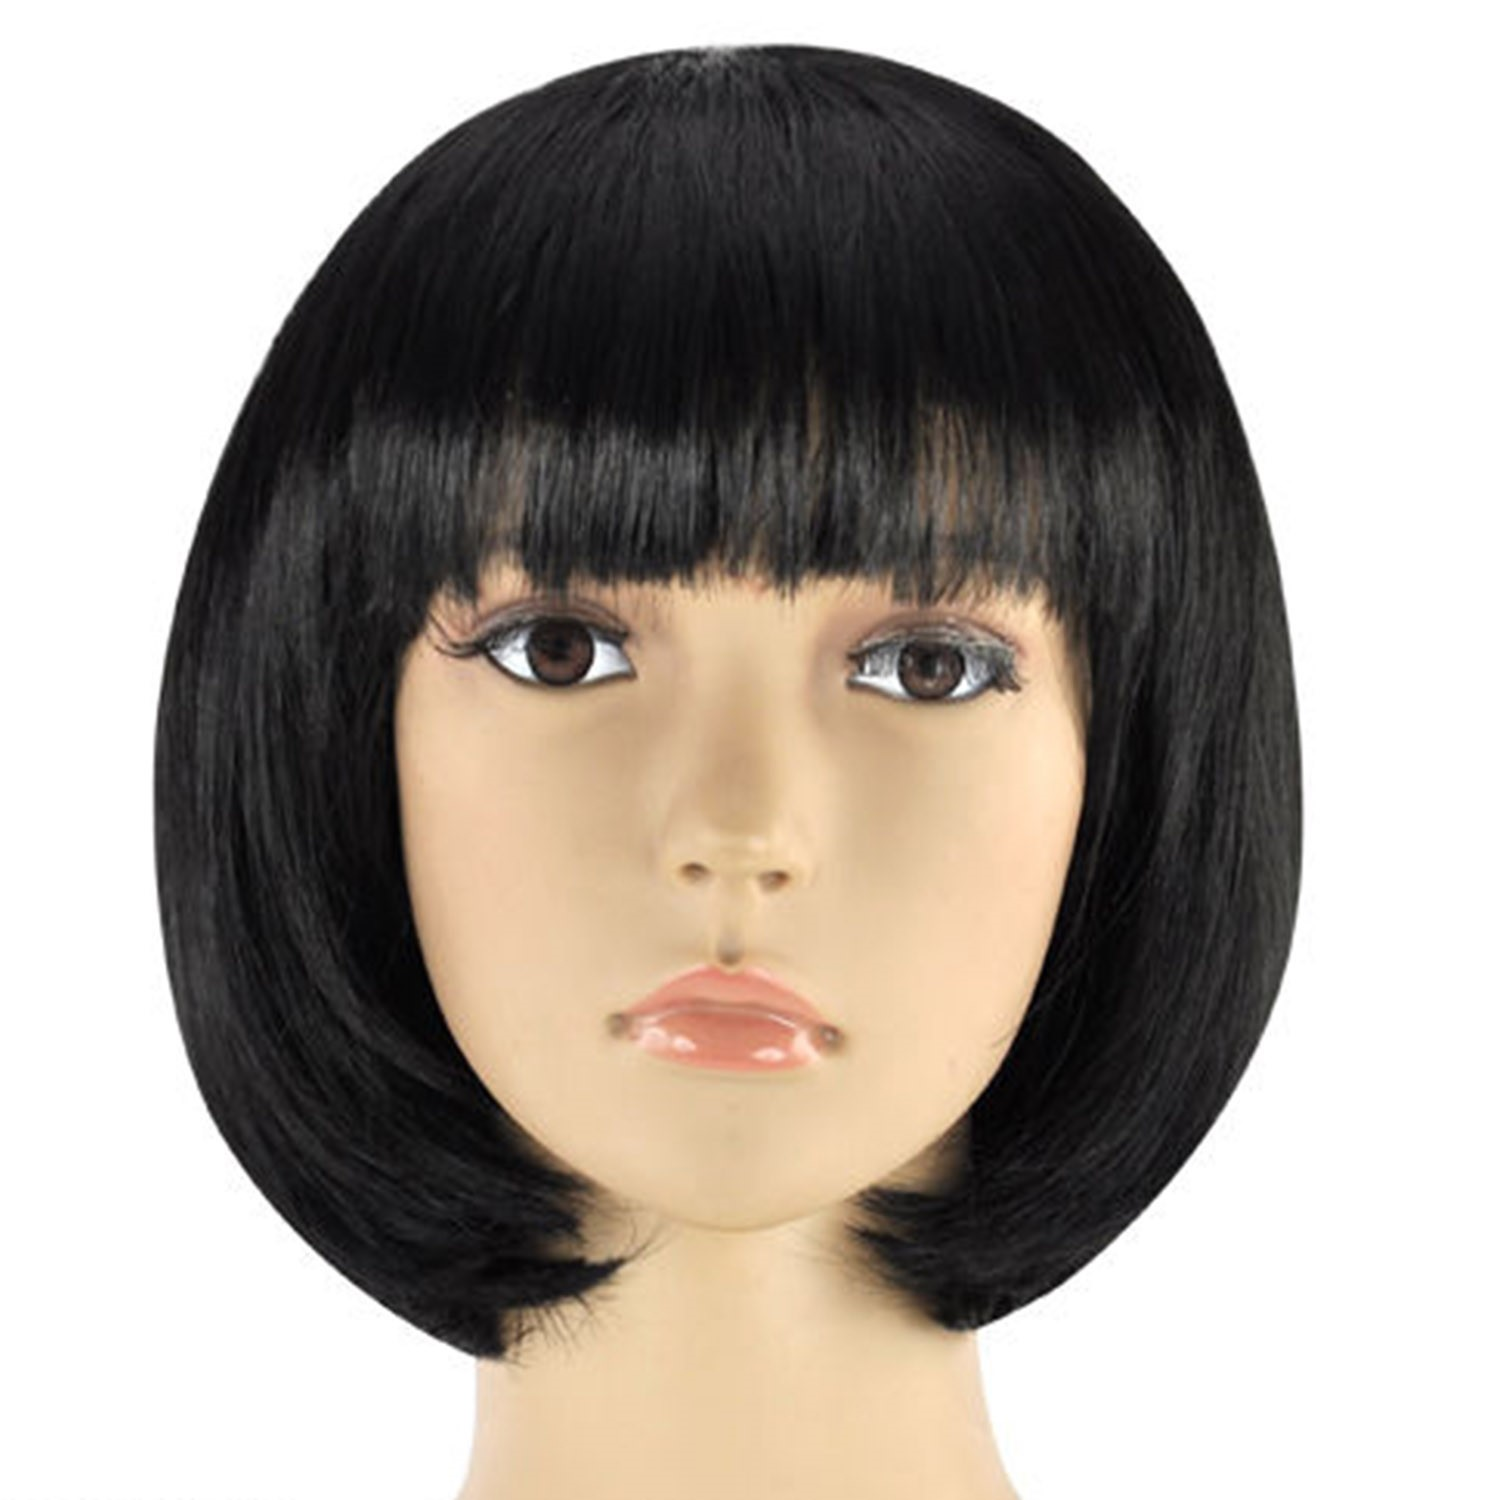 Ladies Wigs Ebay 33